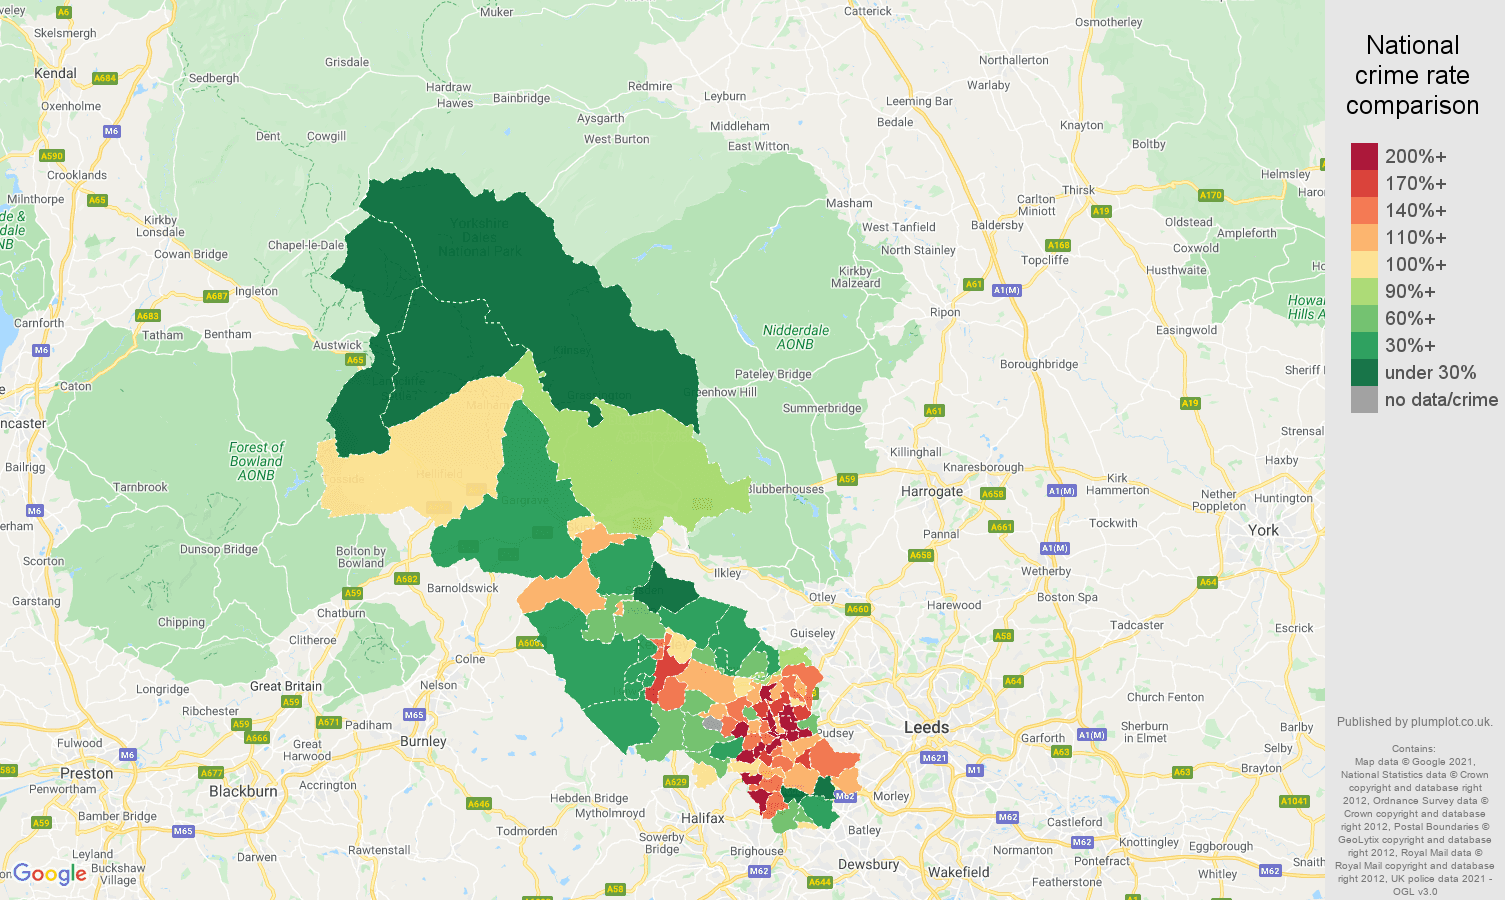 Bradford drugs crime rate comparison map